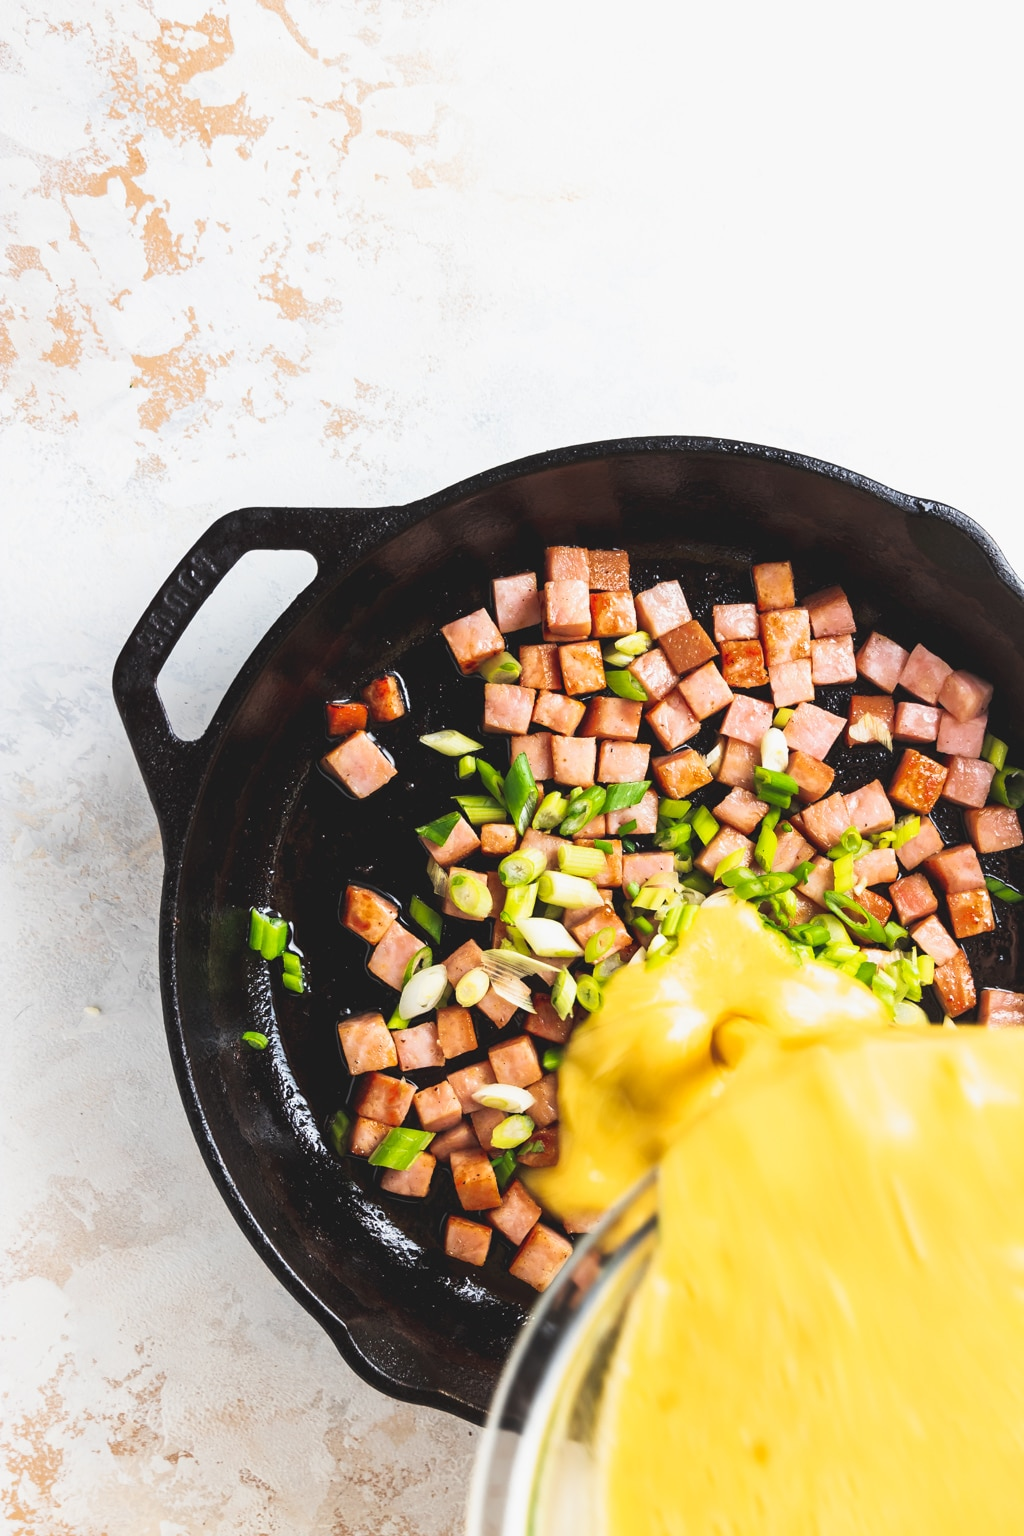 cubed ham and sliced scallions with beaten eggs being poured into cast iron skillet